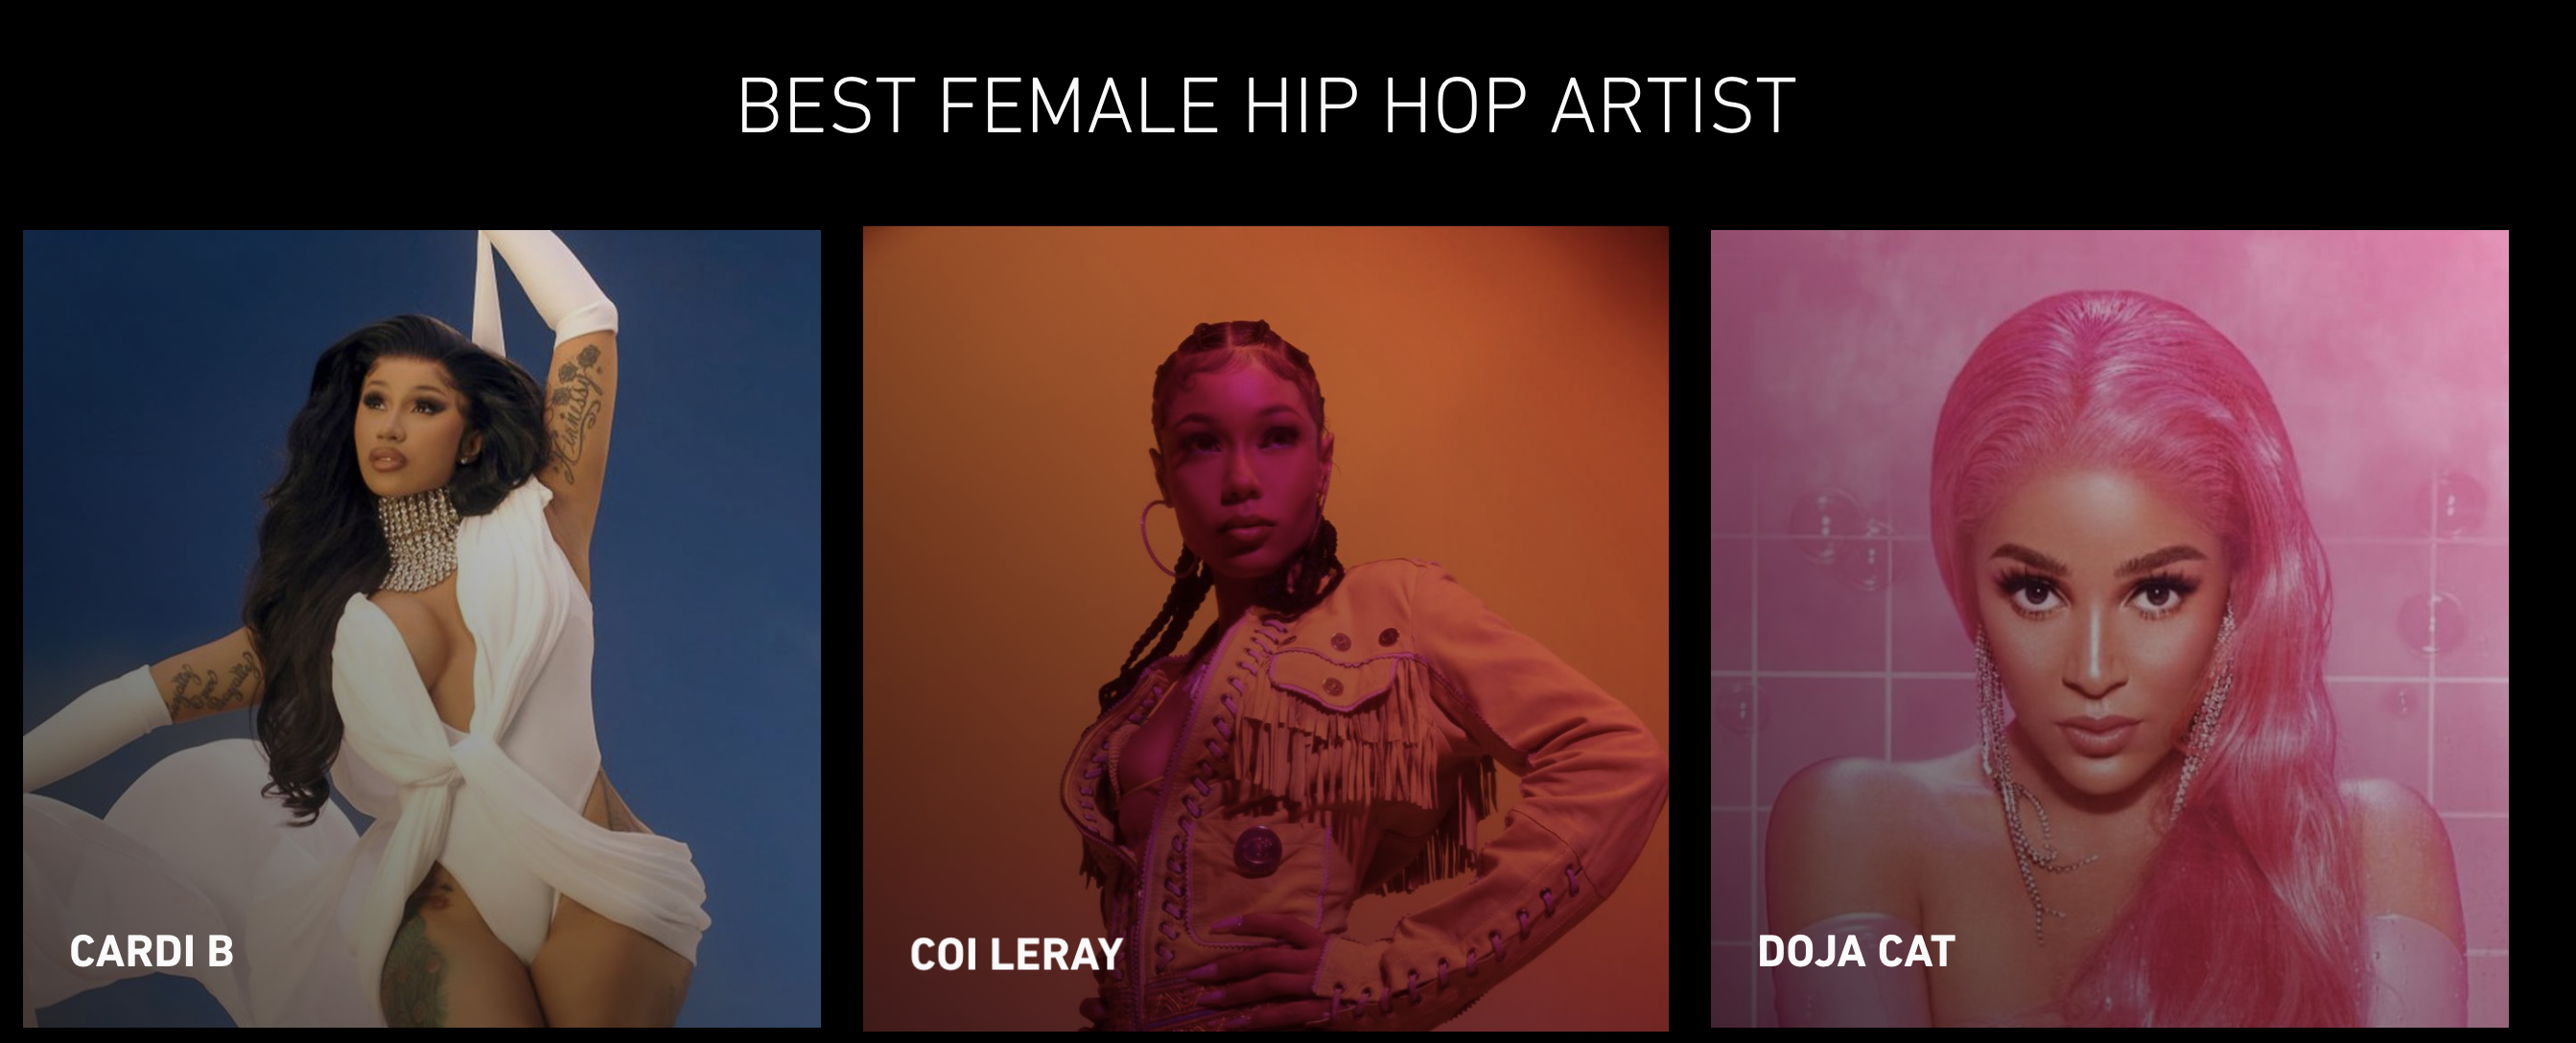 Twitter Reacts to BET Awards Best Female Hip-Hop Artist Nominees